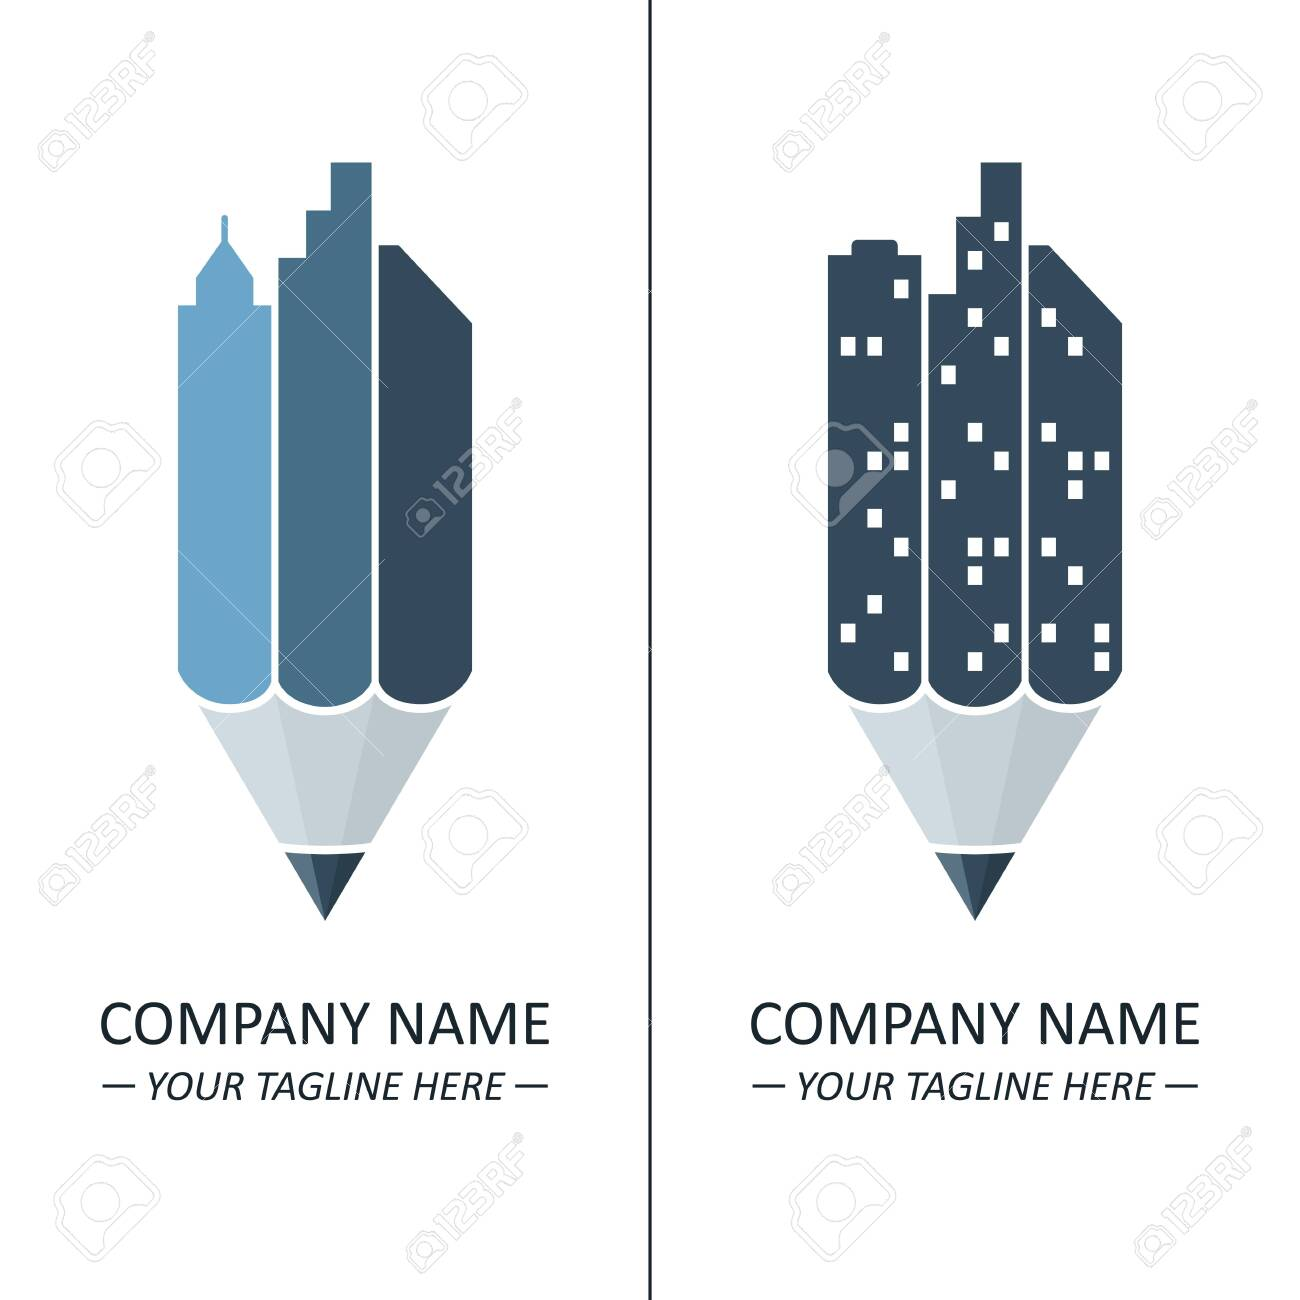 Logo Concept With Pencil And Skyscrapers Idea For Architecture Royalty Free Cliparts Vectors And Stock Illustration Image 128471722